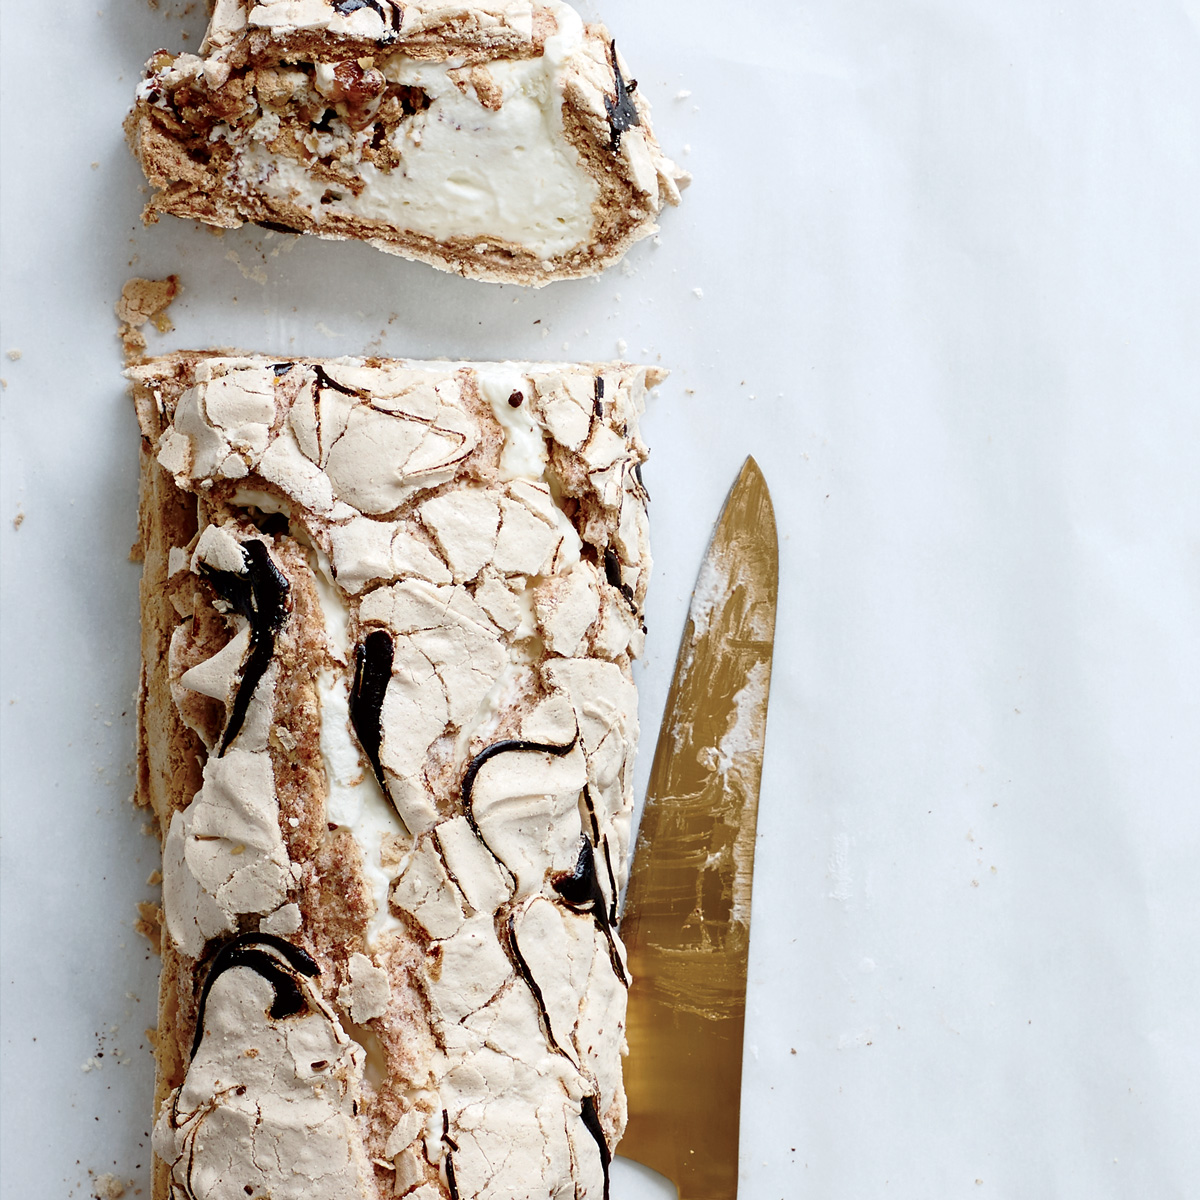 Swirled Meringue Roulade with Praline Whipped Cream